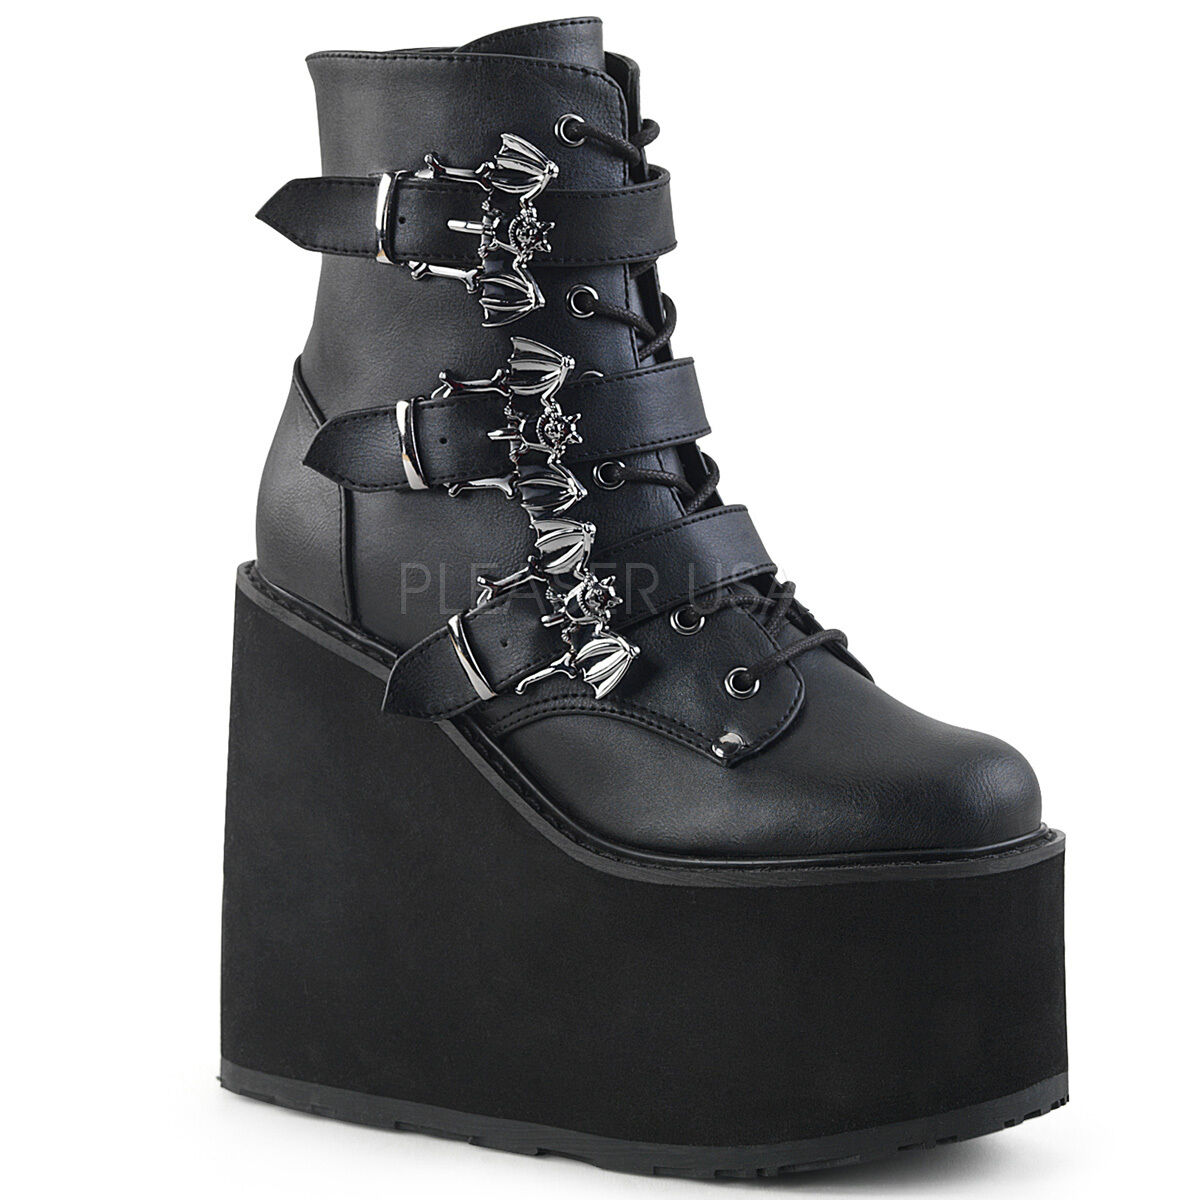 DEMONIA SWI103 BVL Wedge Platform Women's Punk Goth Ankle Boots w  Bat Buckles